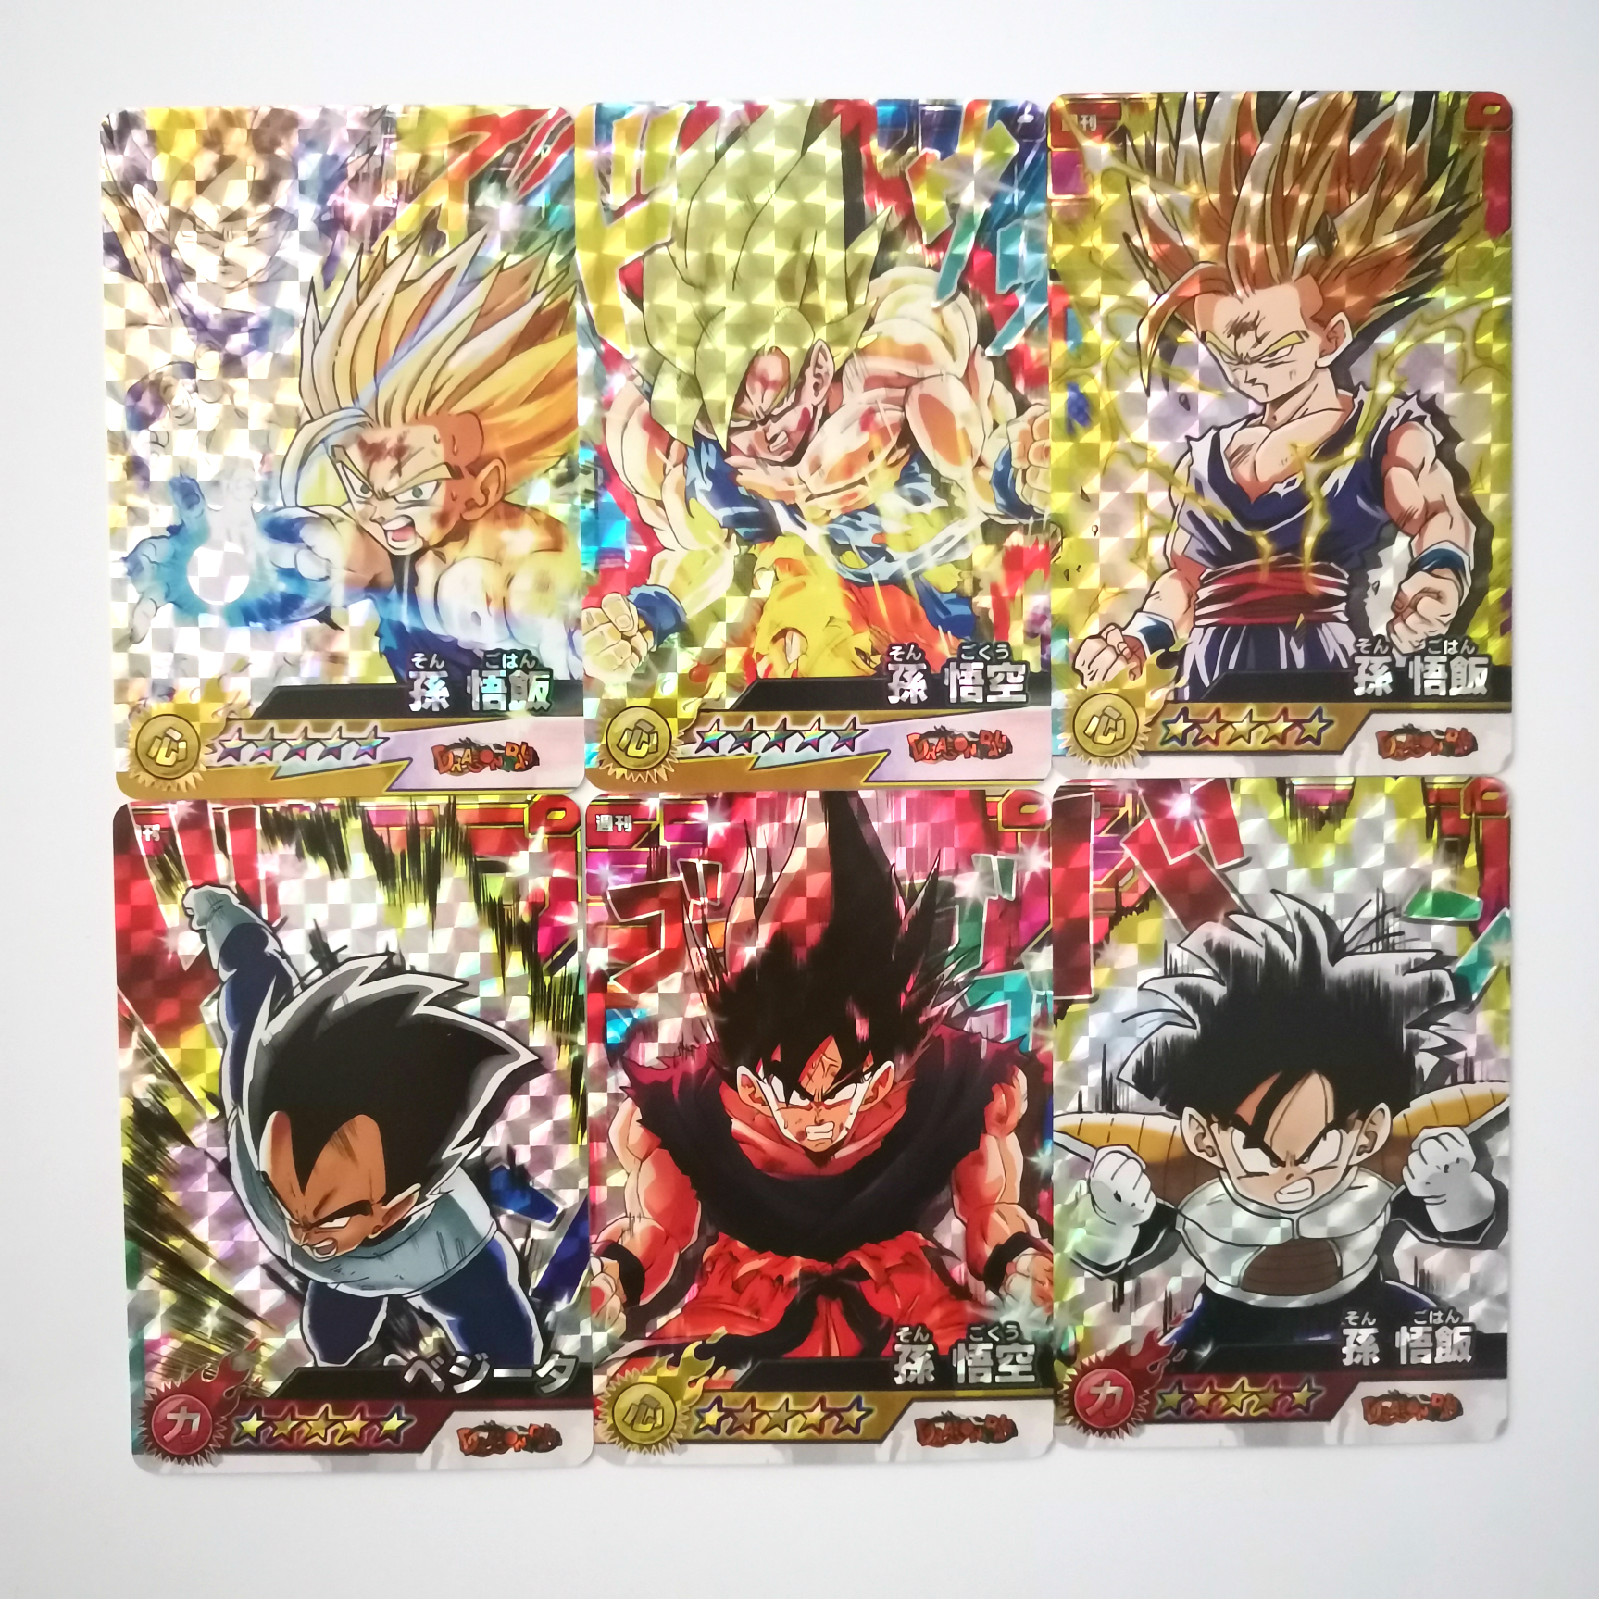 54pcs/set Dragon Ball Jump Force Animation Second Bomb Toys Hobbies Hobby Collectibles Game Collection Anime Cards